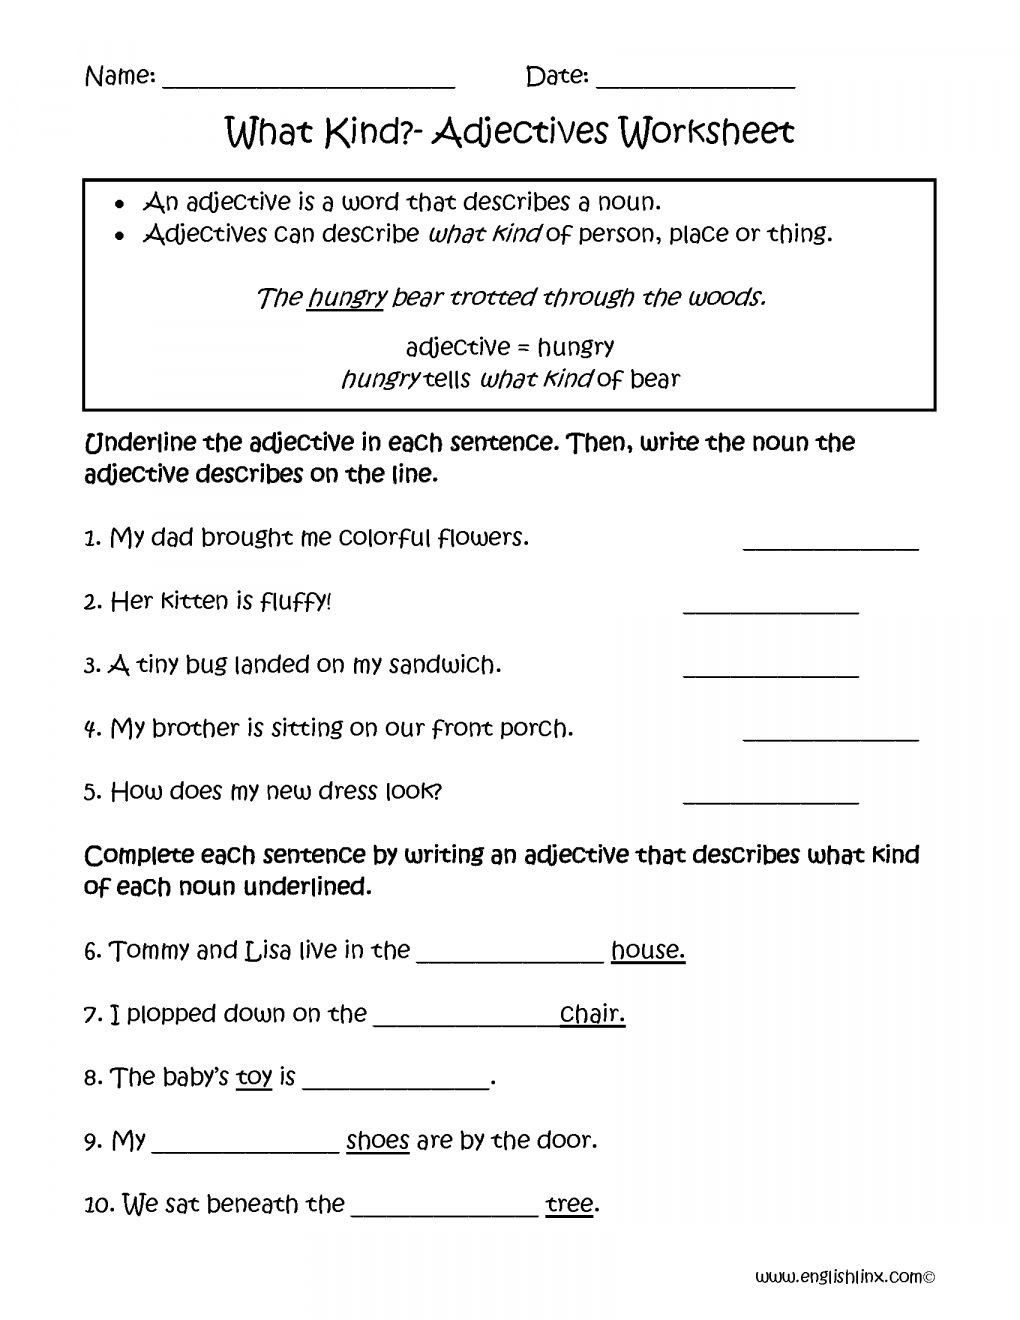 Adjectives Worksheets 3rd Grade Free Adjective Worksheets 4th Grade